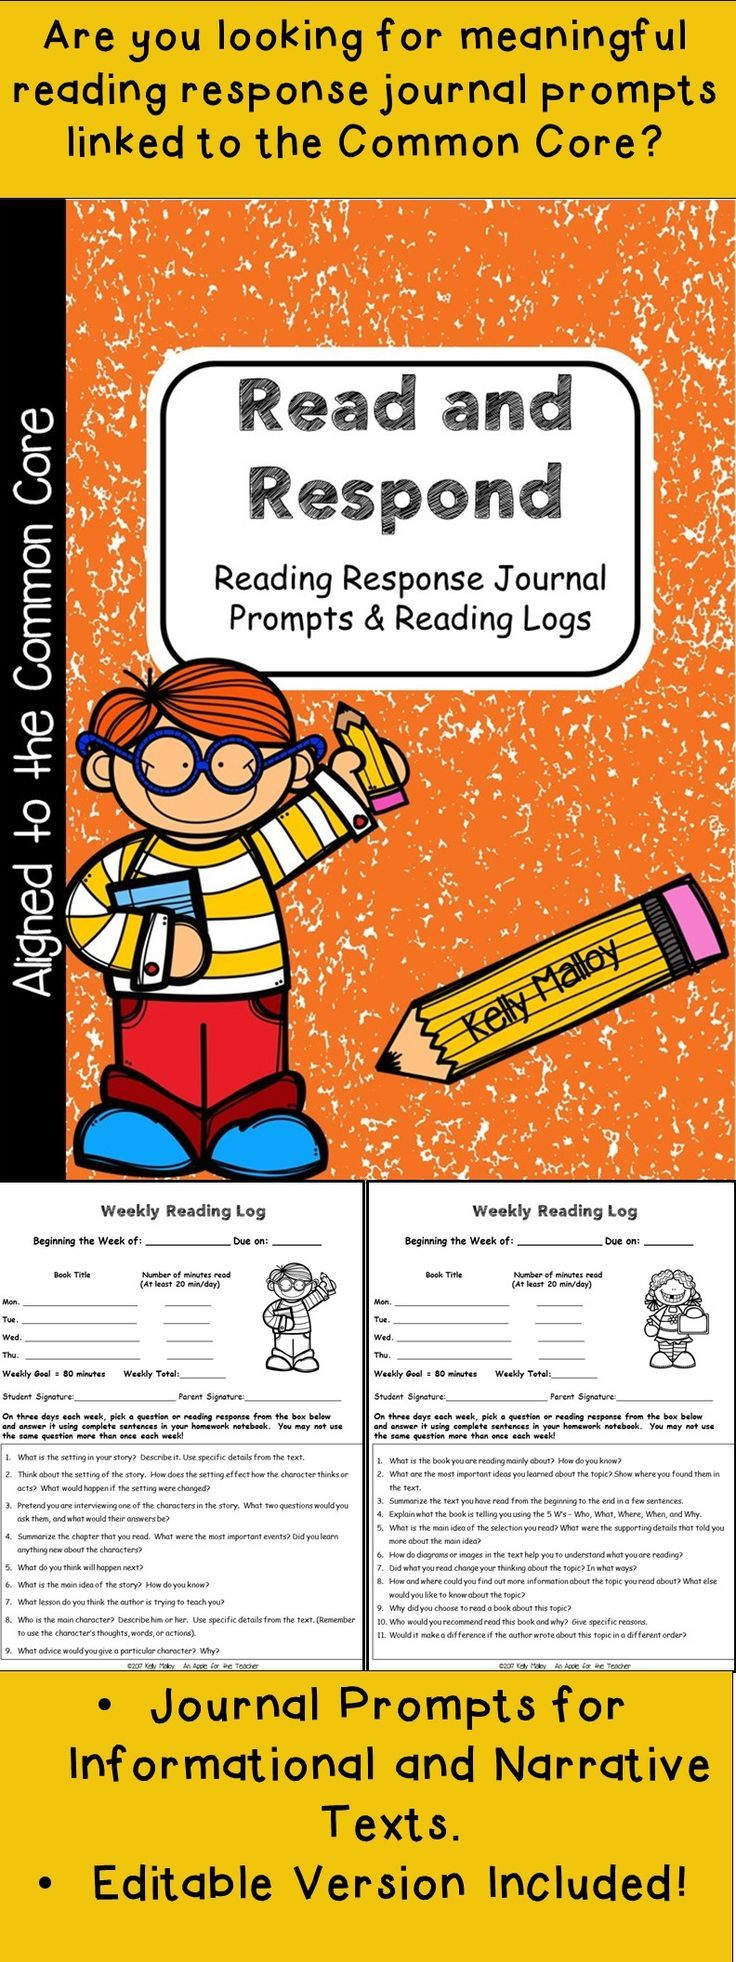 3rd Grade Reading Response Journal Prompts Read and Respond - Reading Response Journal Prompts and Reading Logs aligned to 3rd  Grade Common Core Standards.